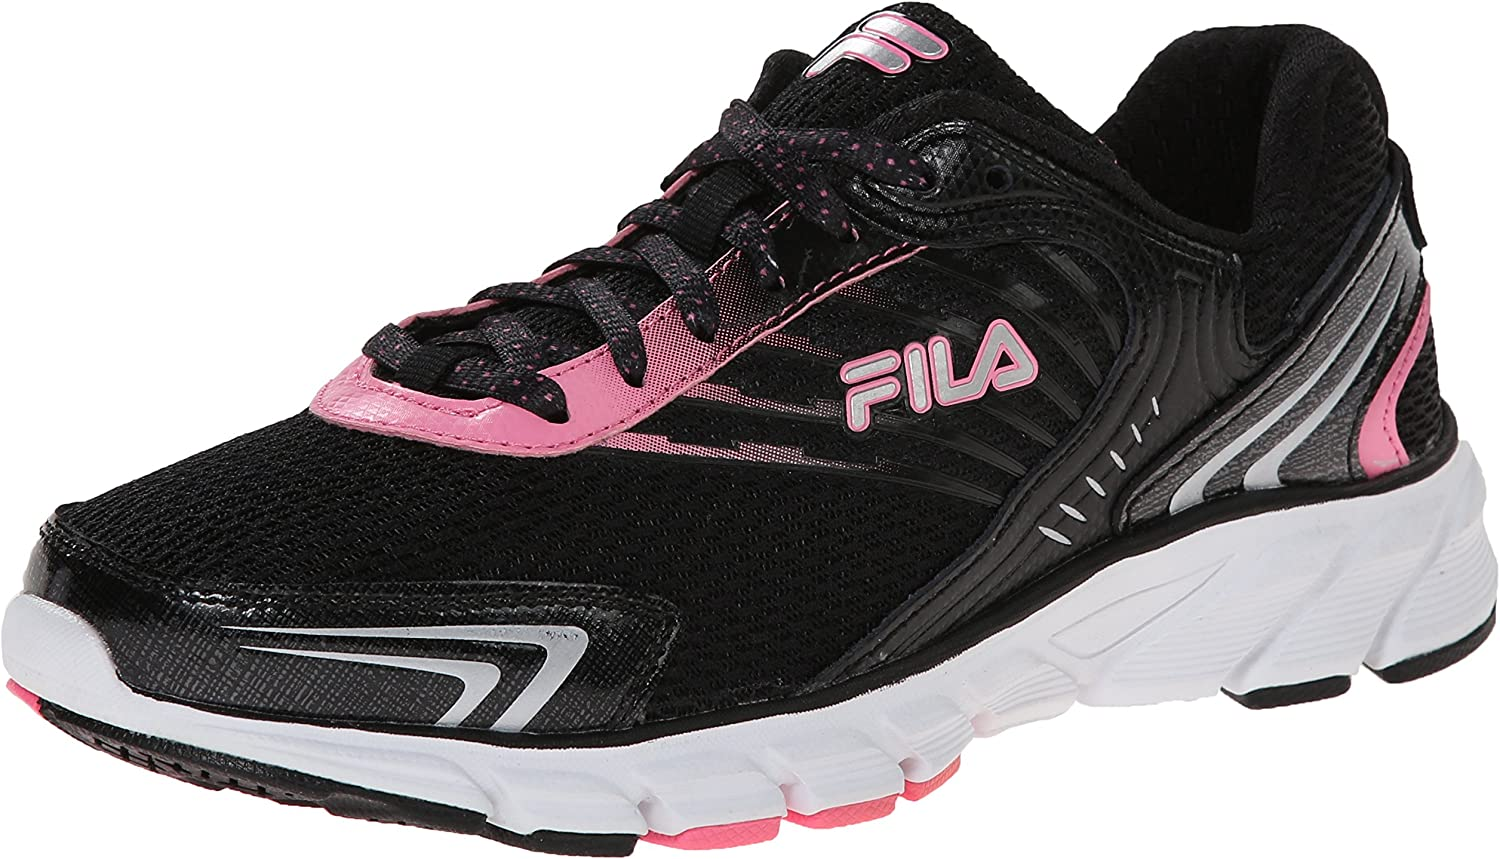 Fila Women's Maranello Running shoes